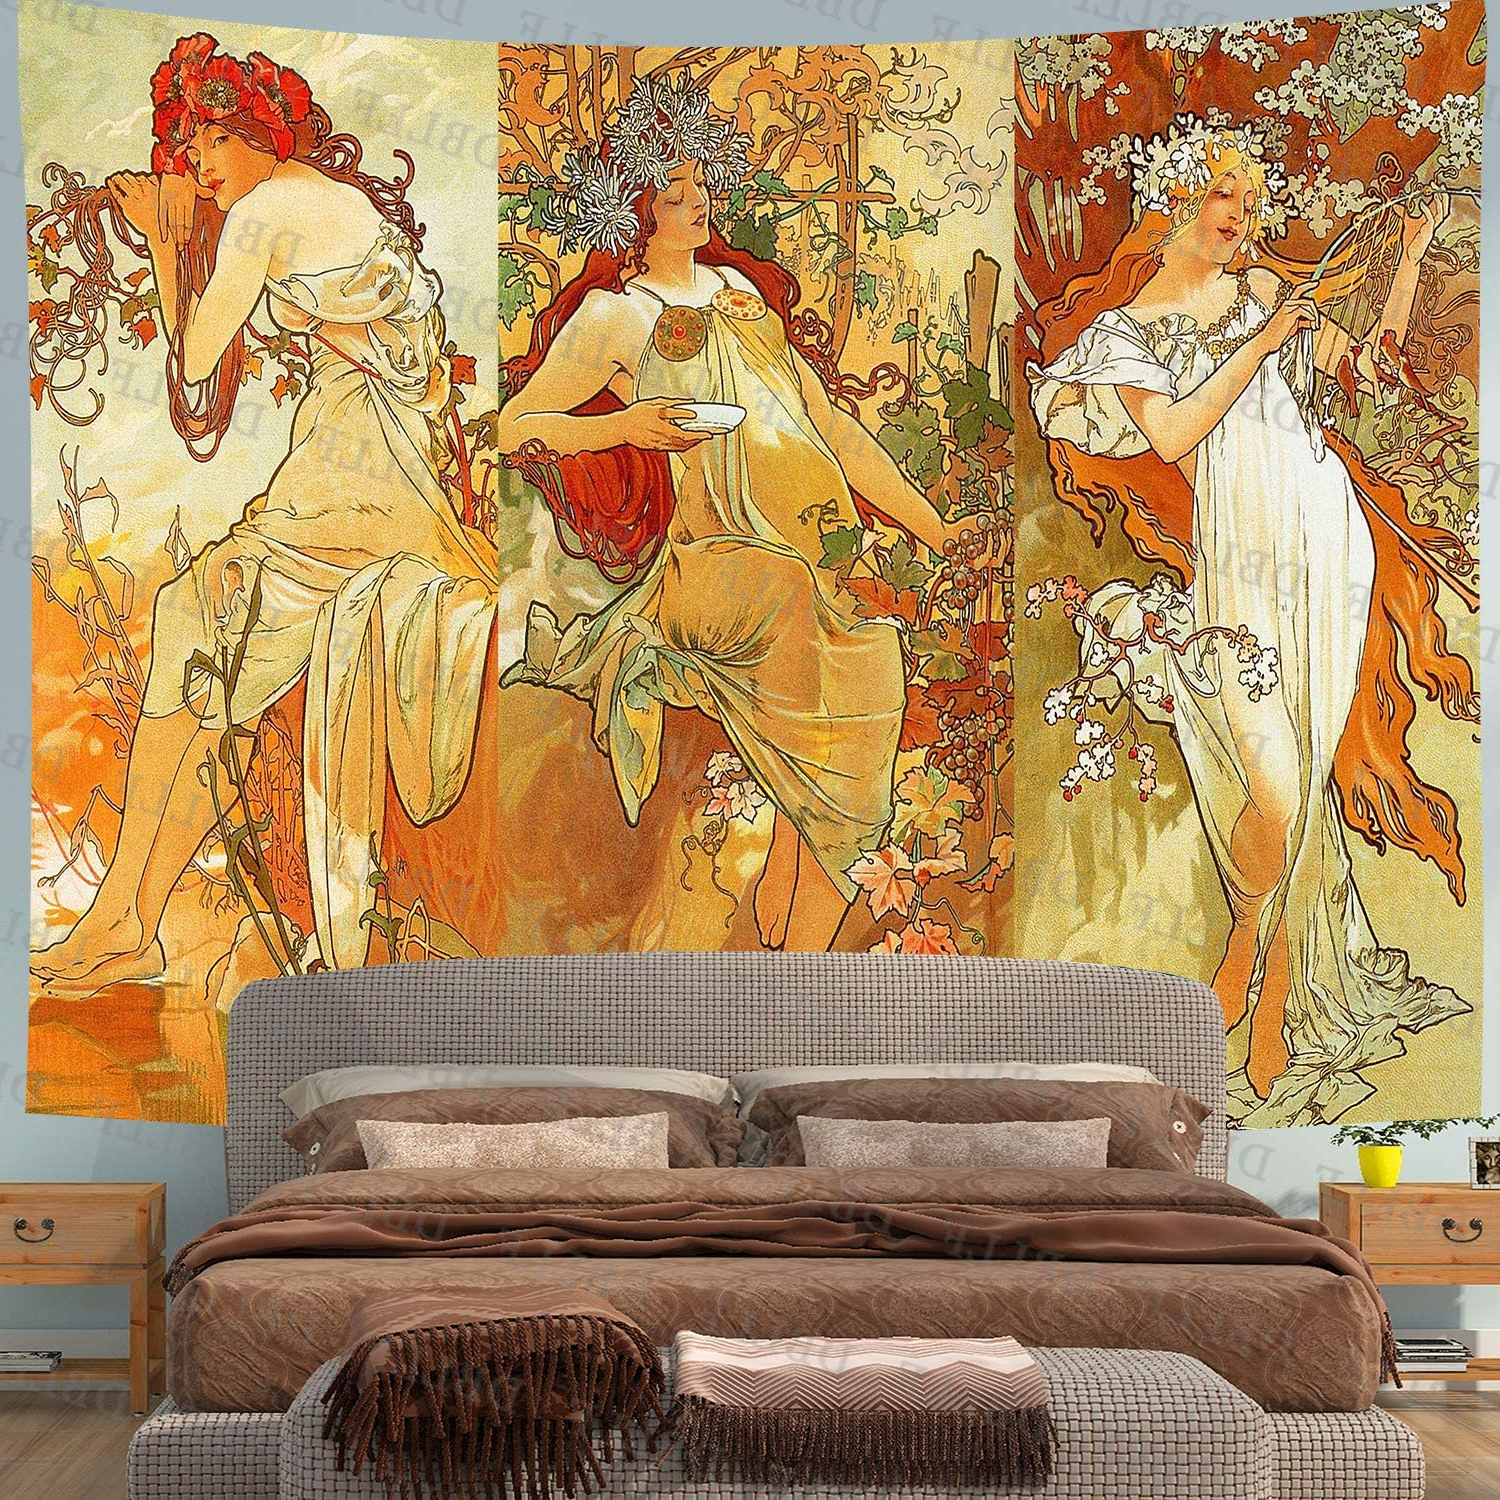 Blended Fabric Mucha Autumn European Wall Hangings For Popular Dbllf Art Nouveau Lady Tapestry Medieval Optimized Style Tapestry Artwork Wall Hanging Vintage Alphonse Mucha Autumn Paris Fall Nouveau Vineyard Flirt (View 10 of 20)